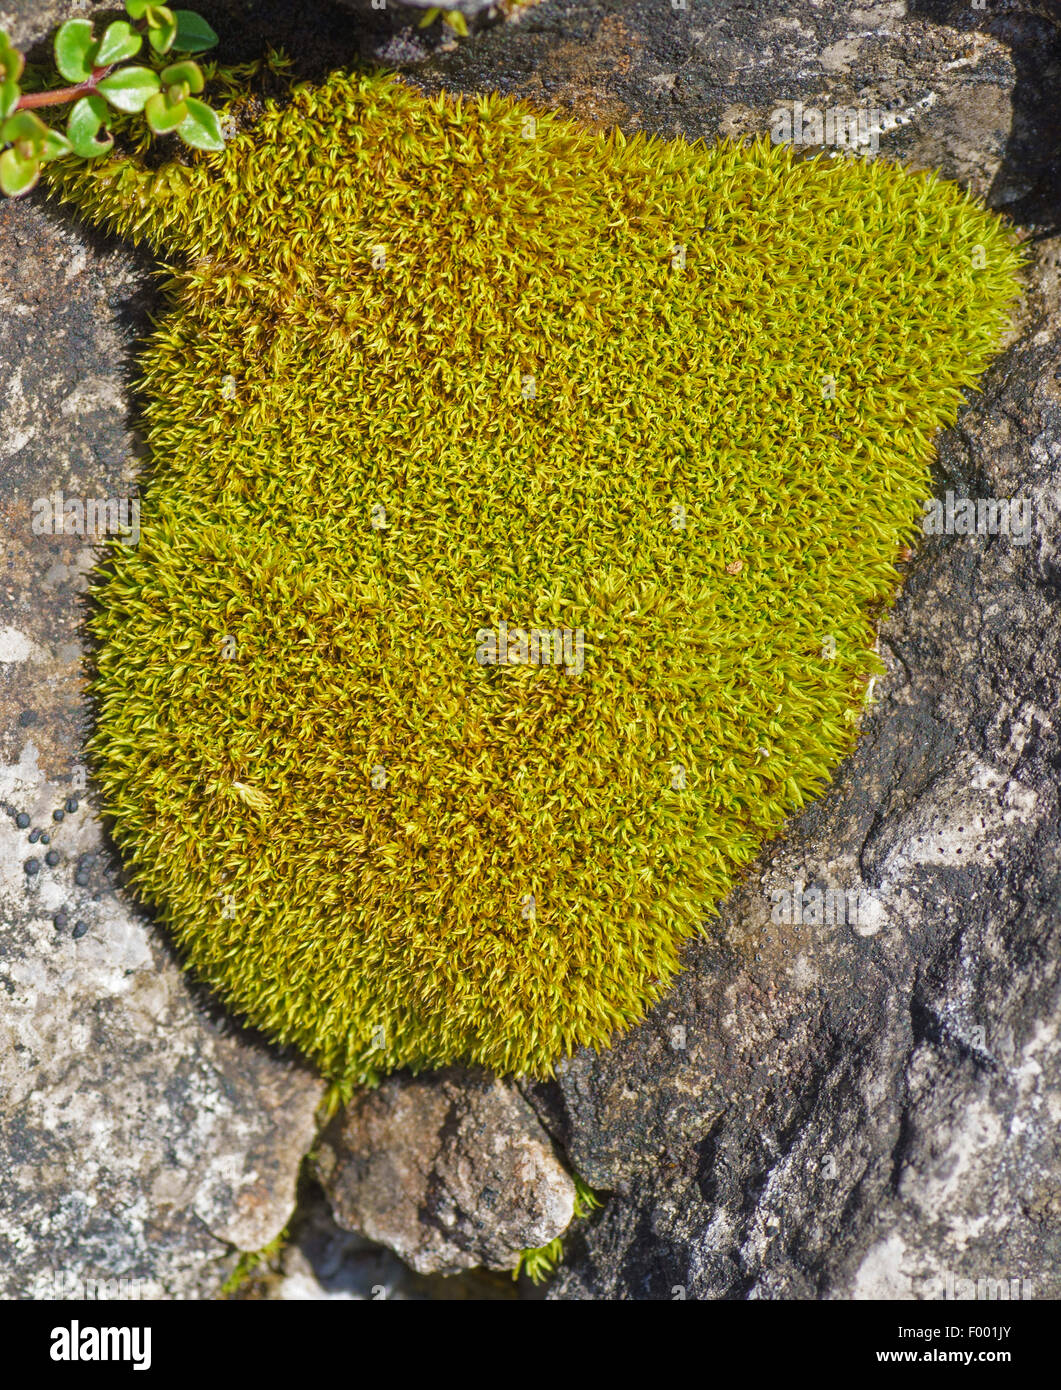 moss cushions in rock crevices, Austria, Tyrol, Lechtaler Alpen Stock Photo